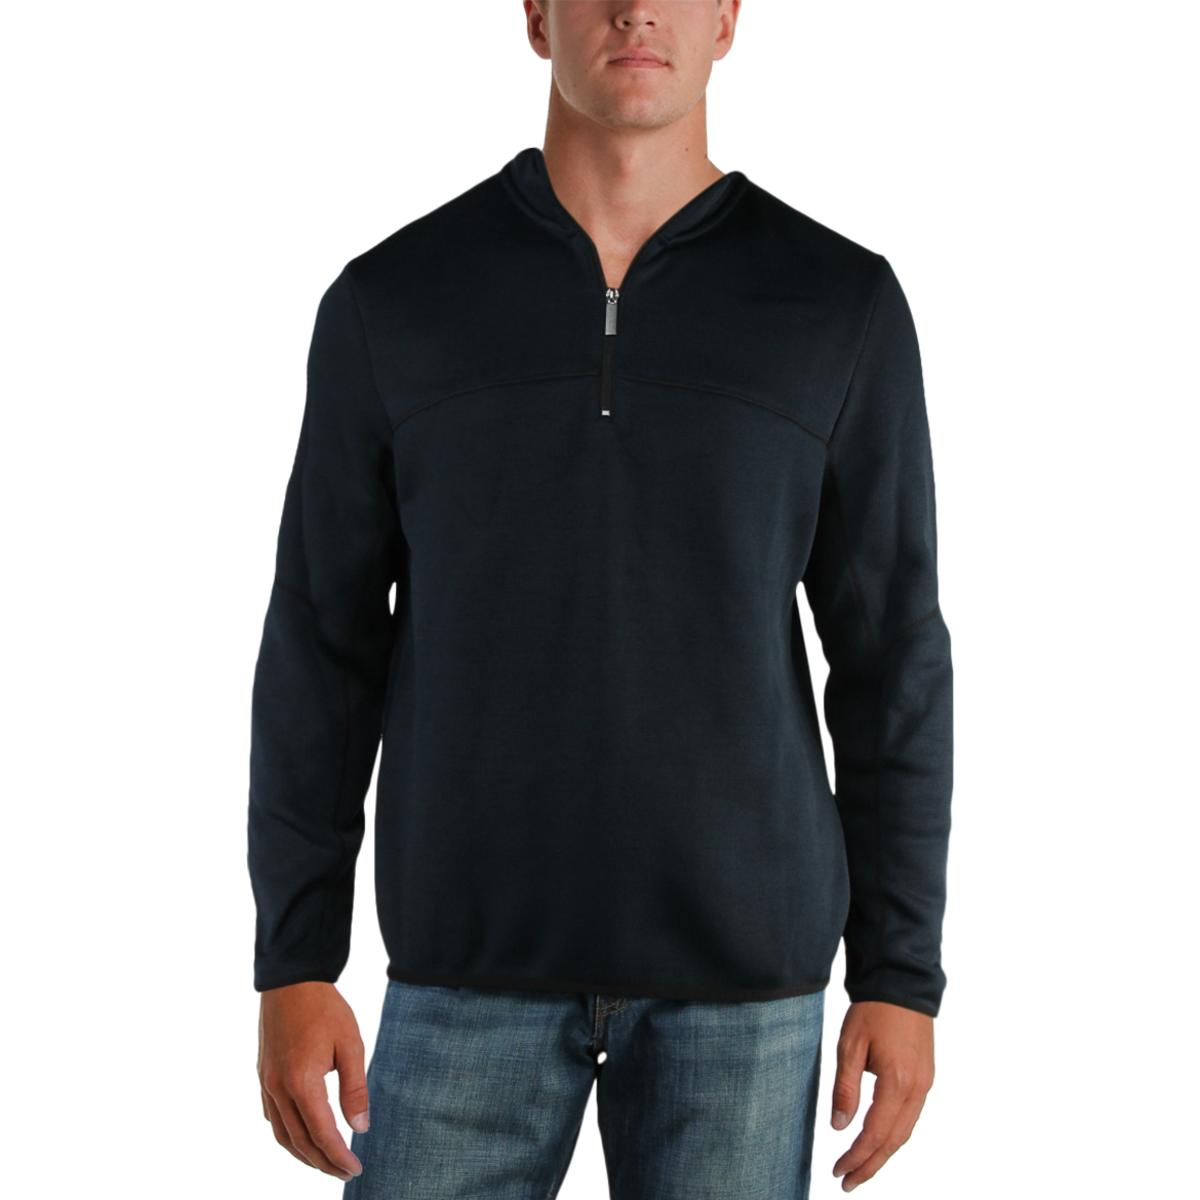 84094cd286 Details about Perry Ellis Mens Mock Neck Knit 1 4 Zip Pullover Sweater Top  BHFO 7314